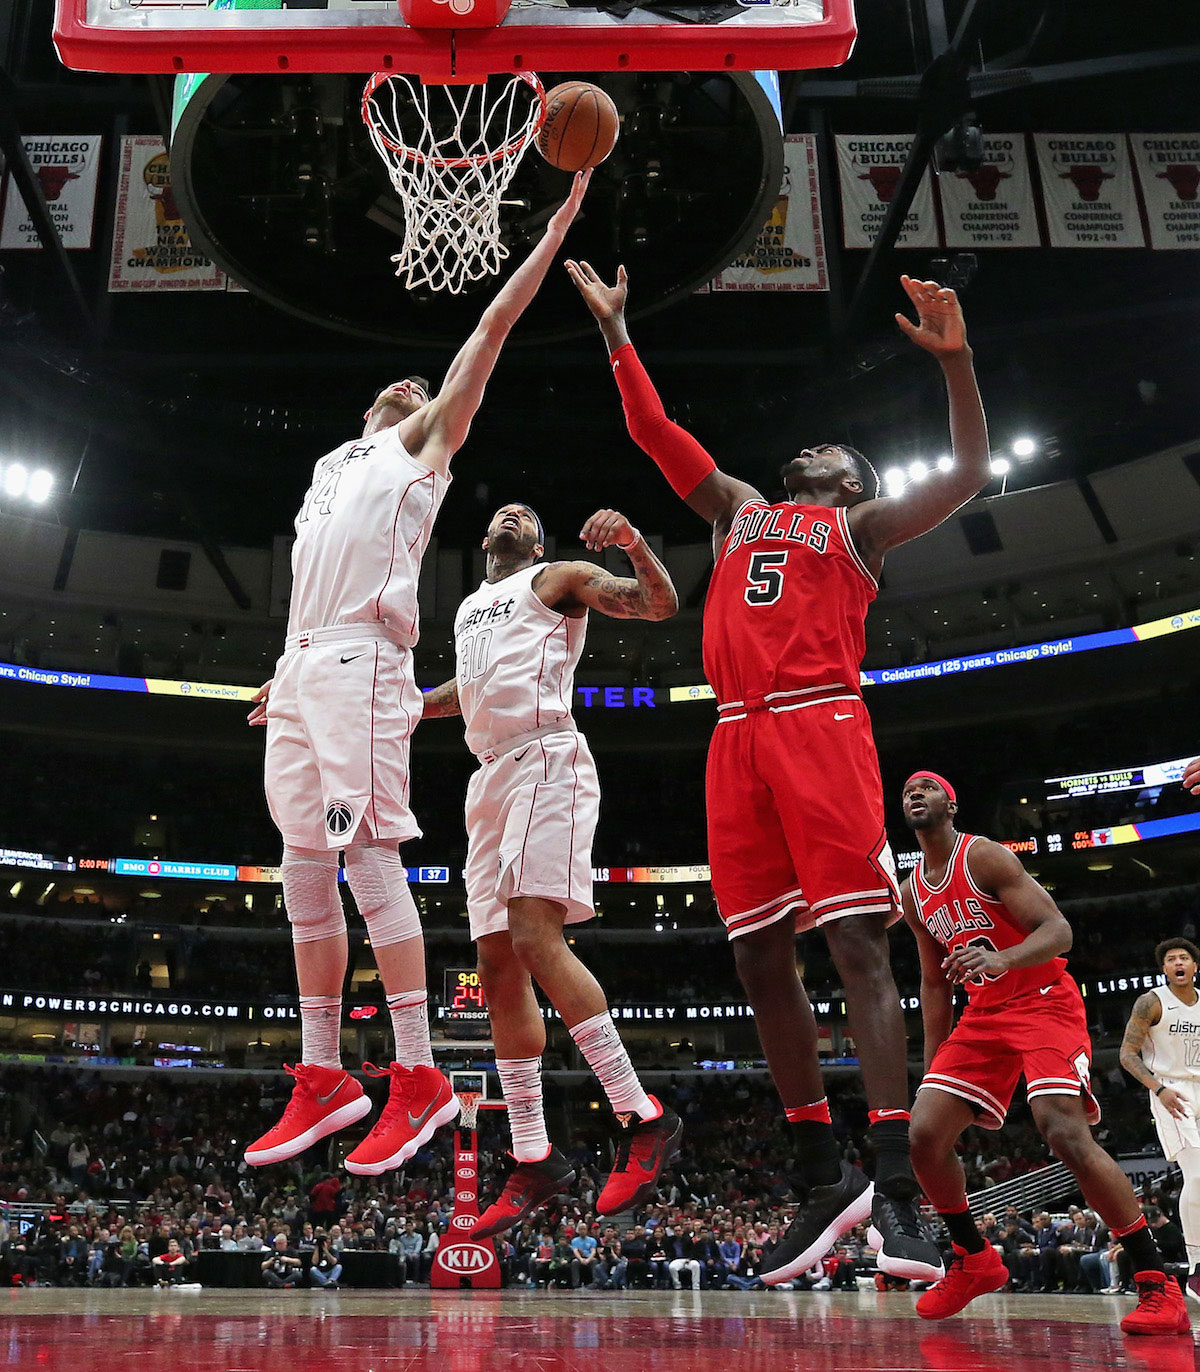 Jason Smith #14 of the Washington Wizards and Bobby Portis #5 of the Chicago Bulls battle fora rebound.